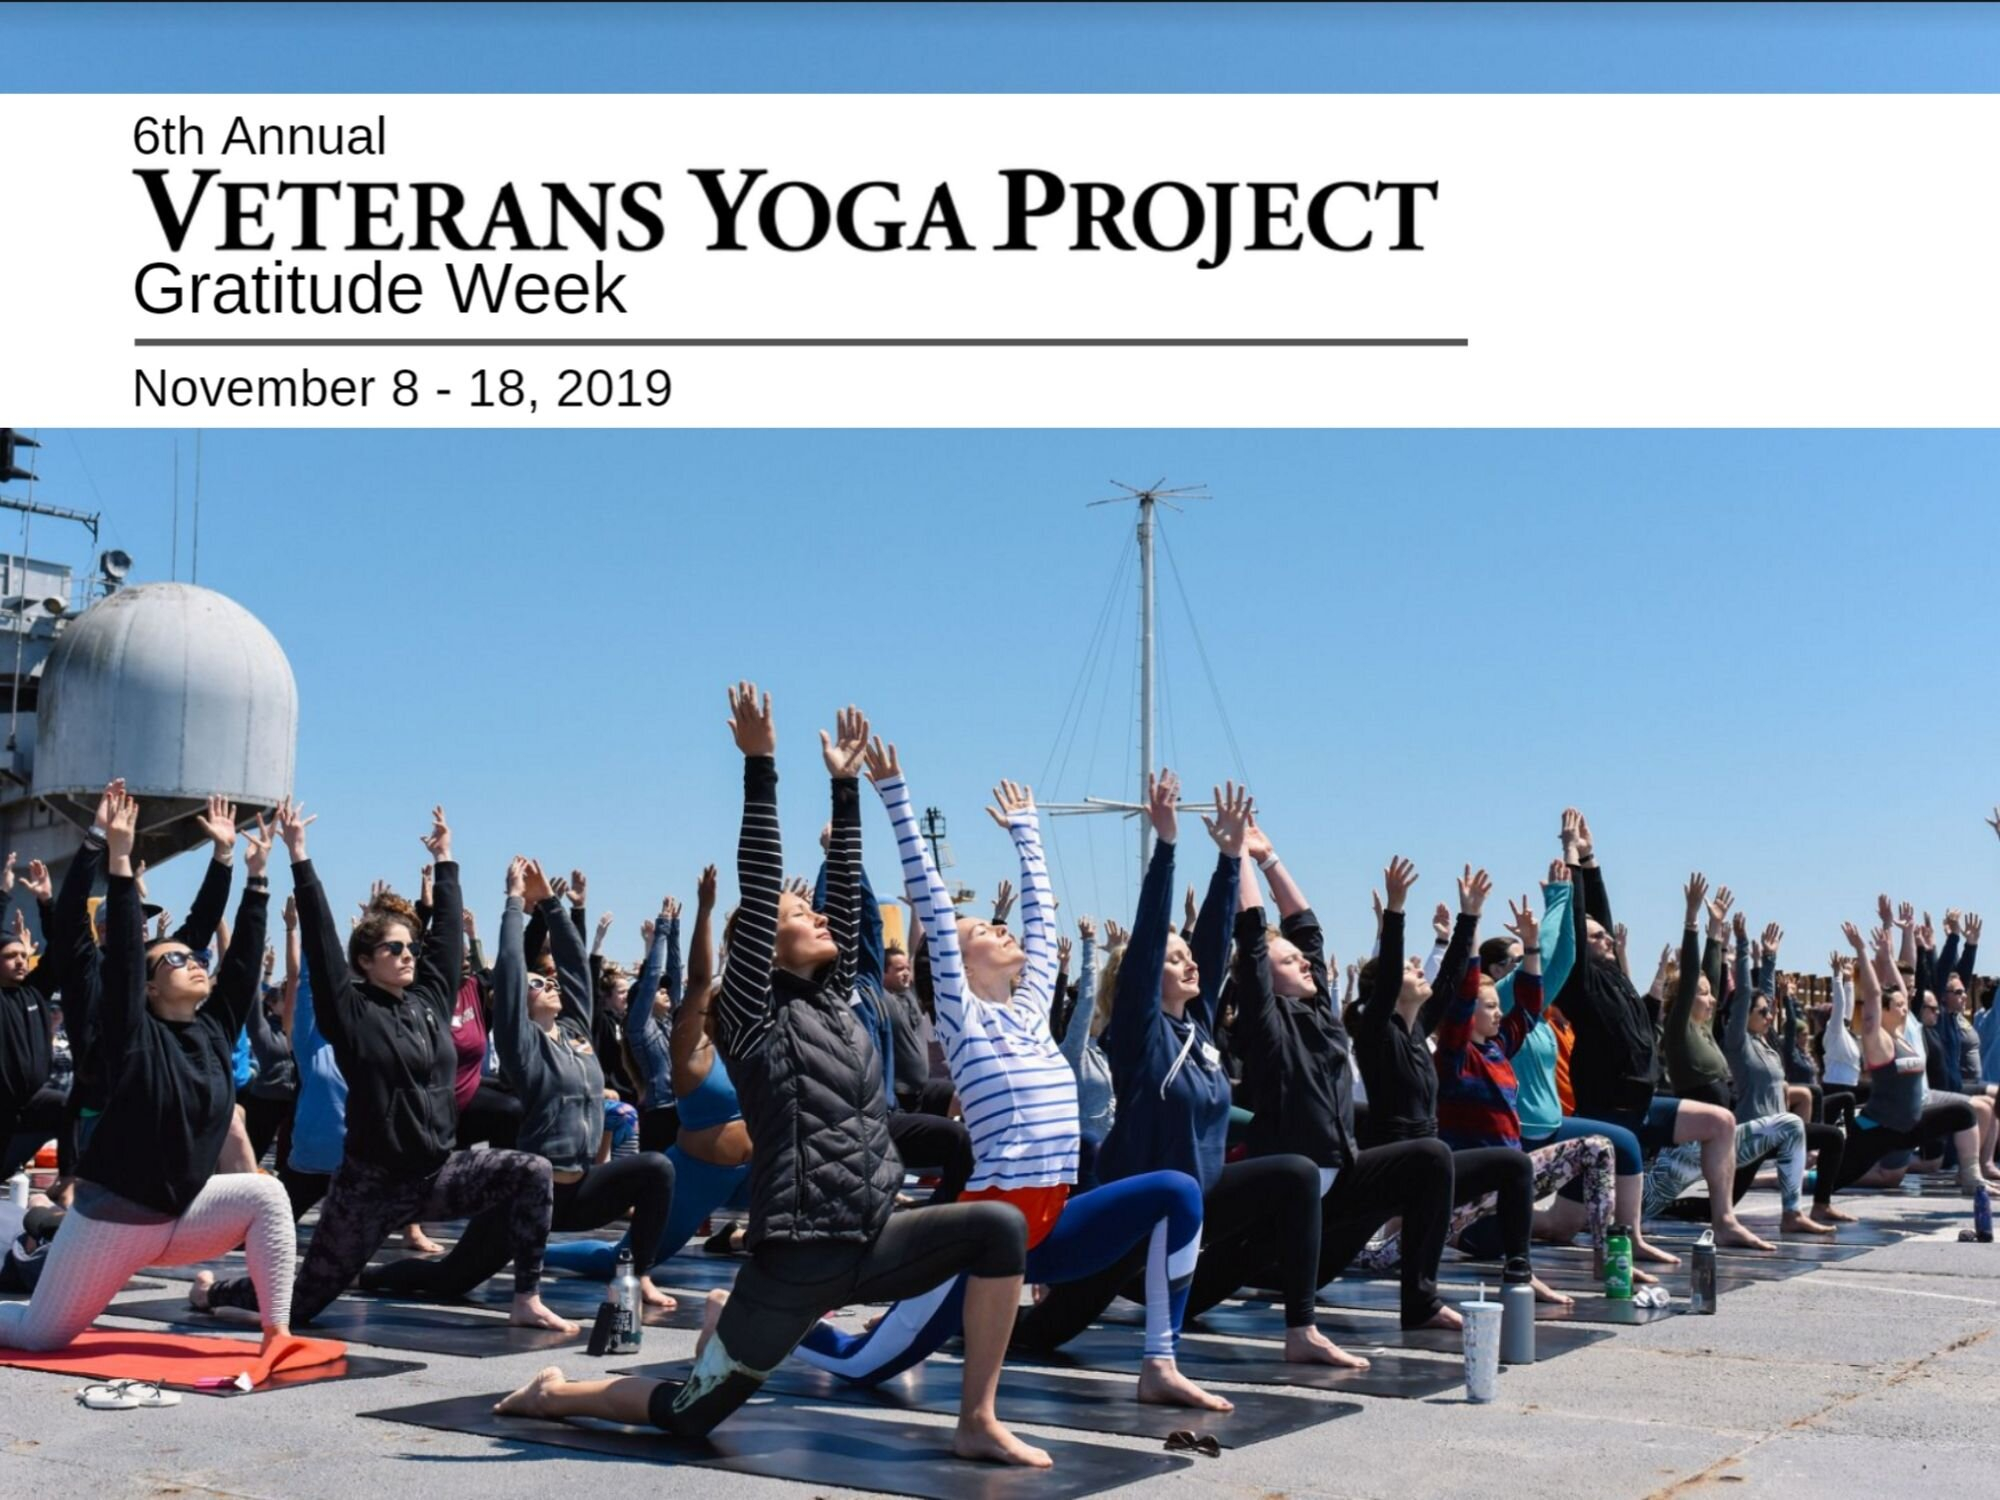 We Thank You ForYour Service - During the week of November 8 thru 18th, the Veterans Yoga Project, in conjunction with 100's of yoga teachers around the globe, show their gratitude to you for all you do.Find a specially offered class, with our thanks.